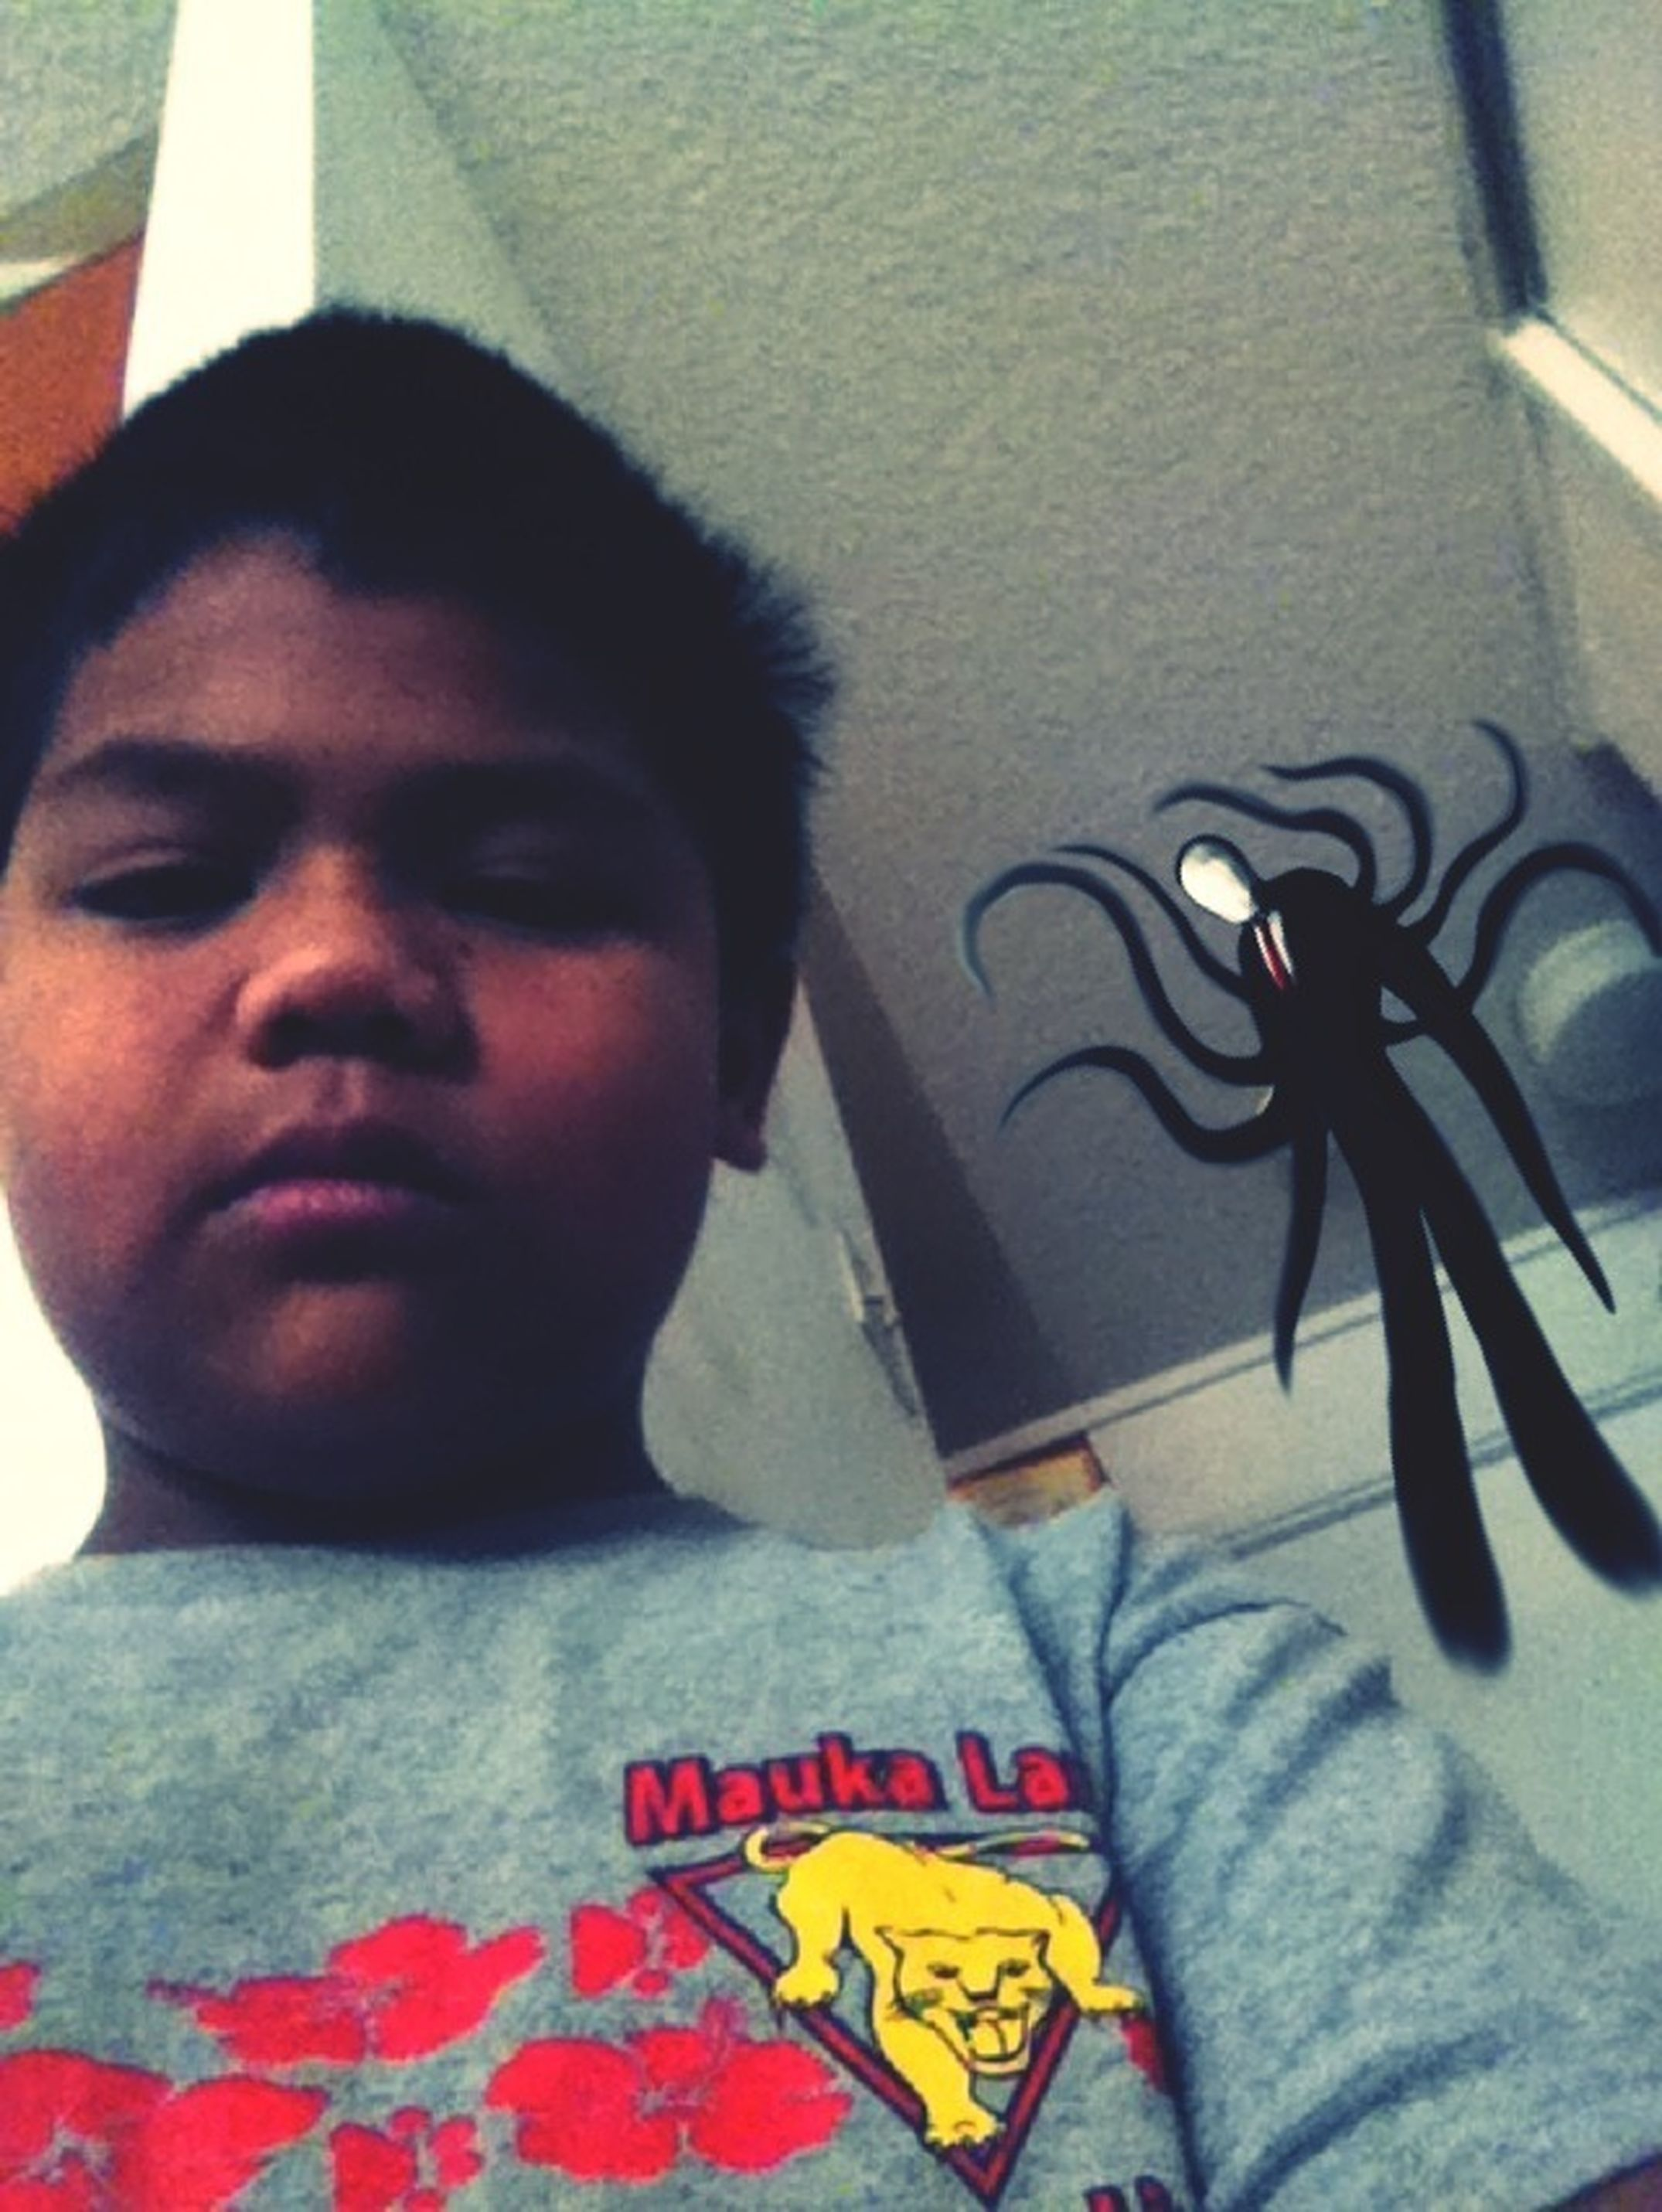 Slenderman Is With Me!!!!!!!!!! I Just Want To A Photo